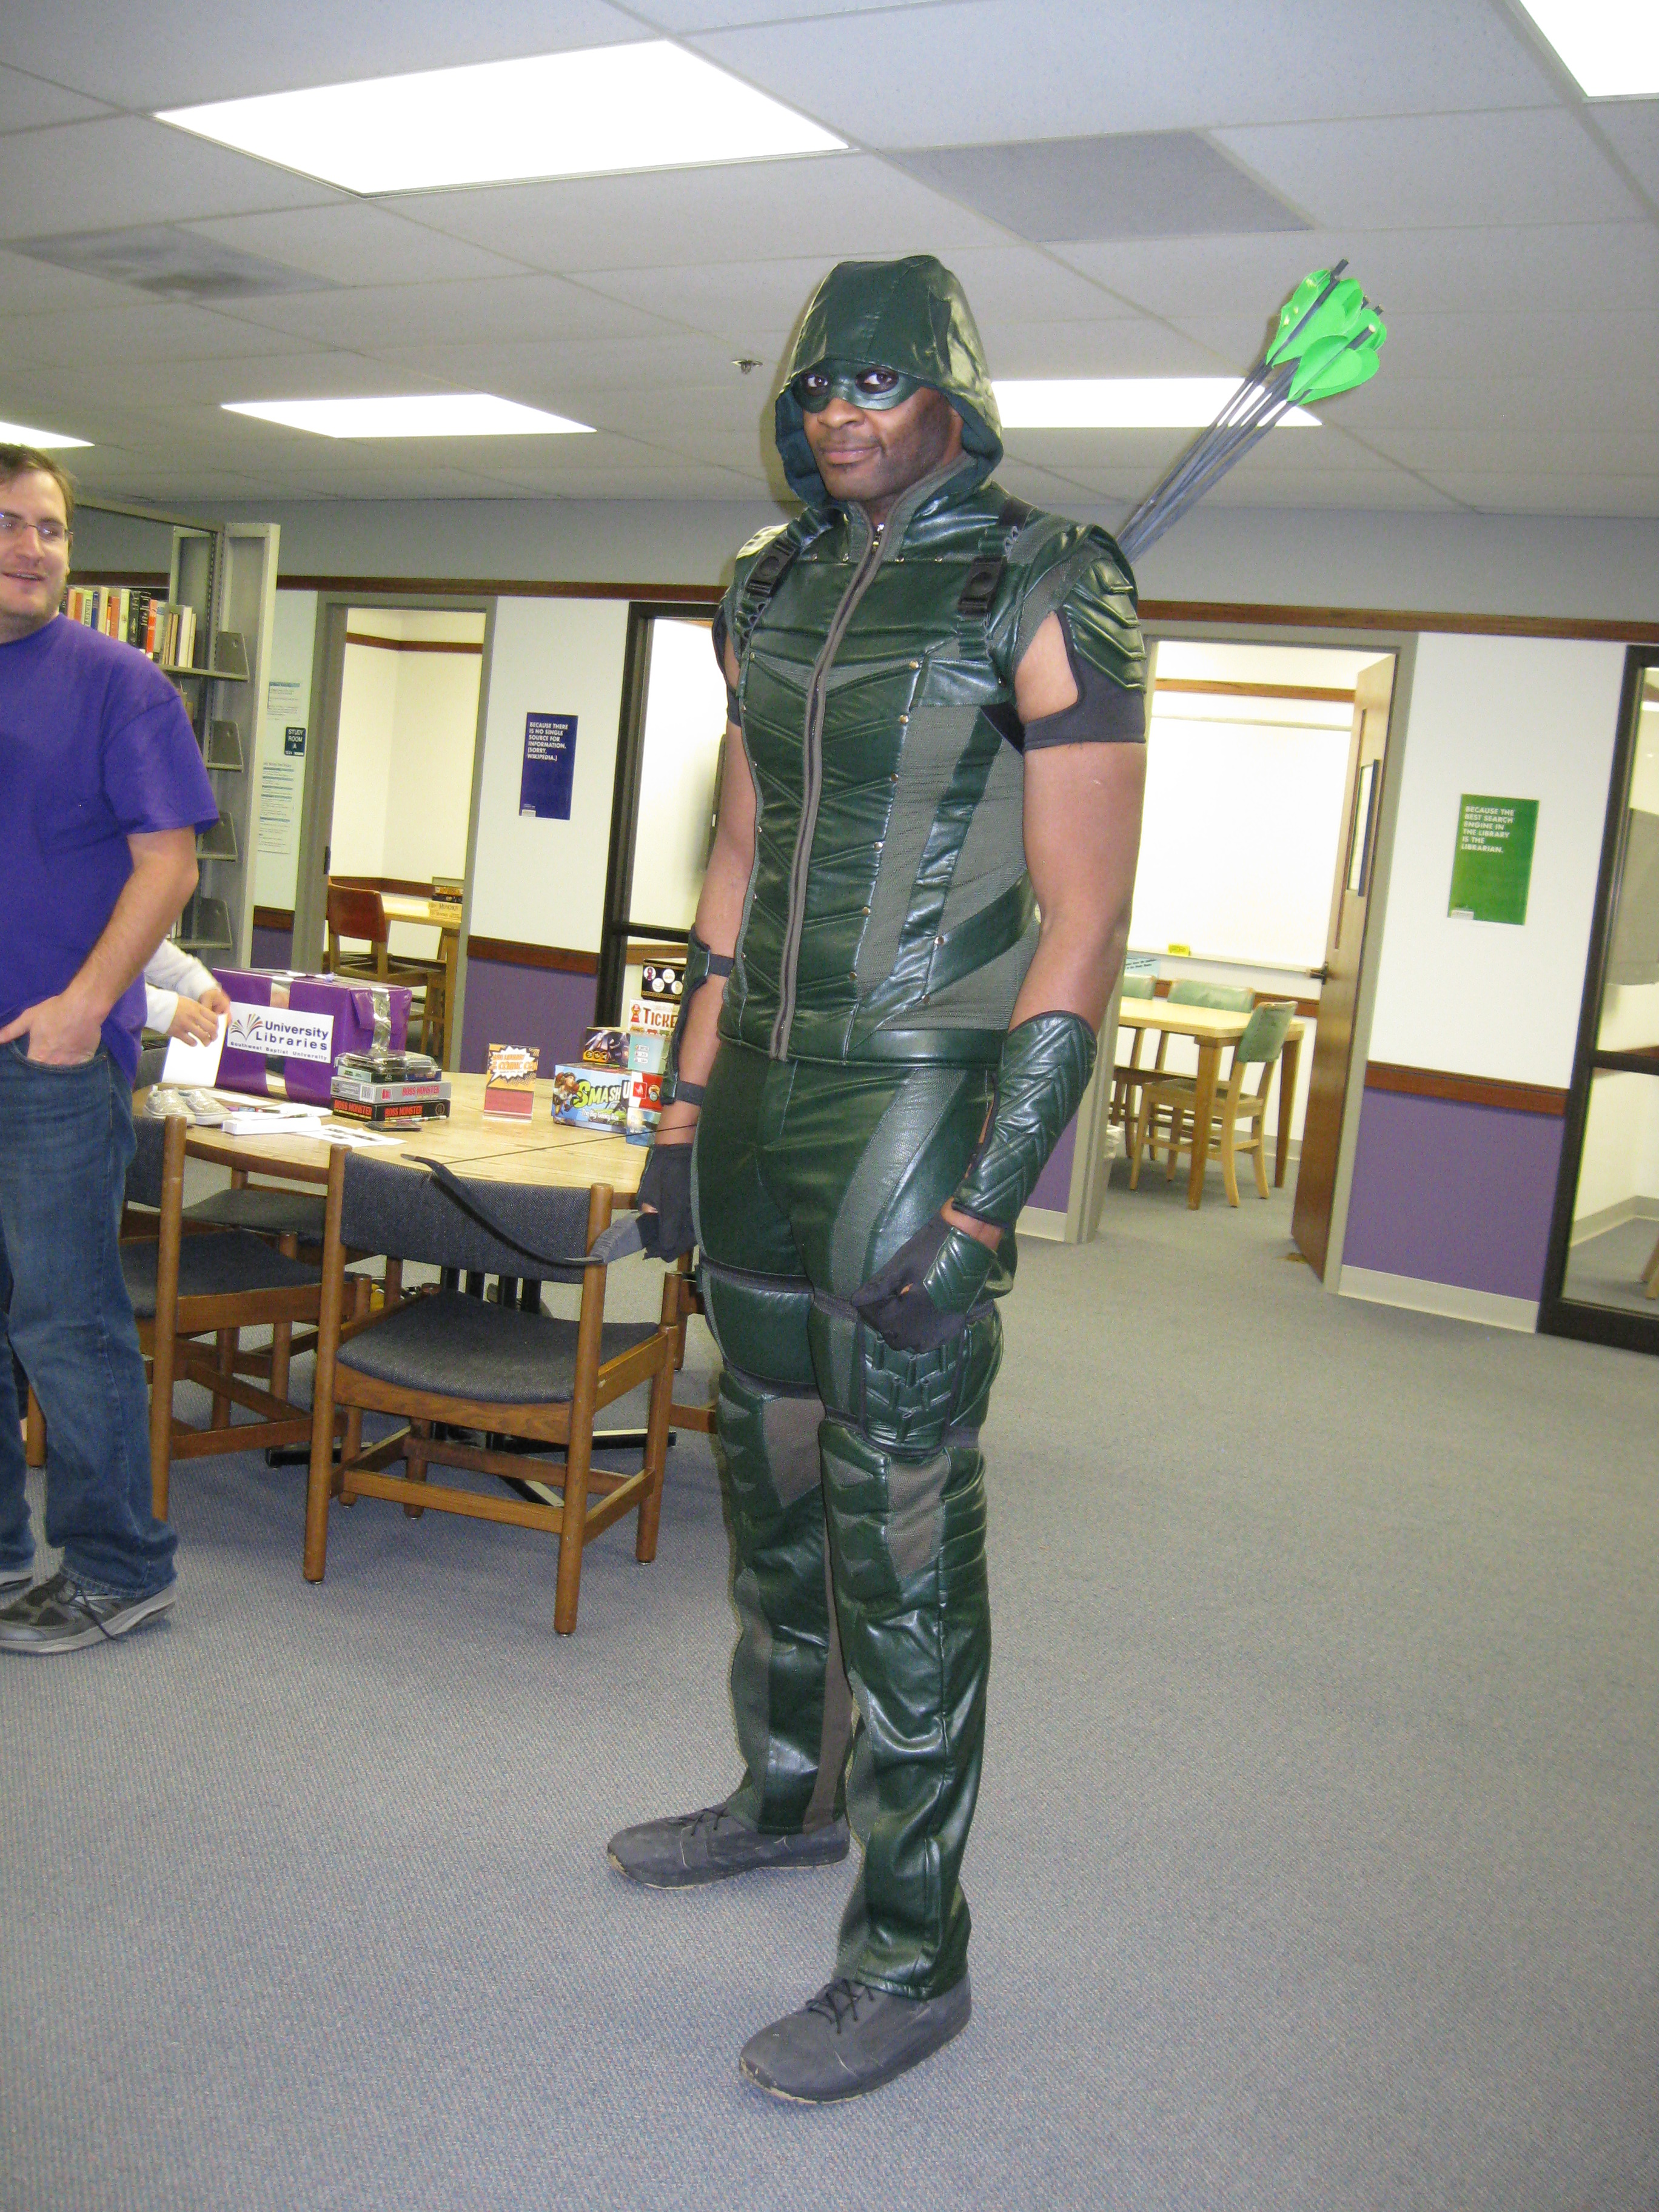 Tall Man in Green Arrow Costume - Hutchens Library, SBU, 2017